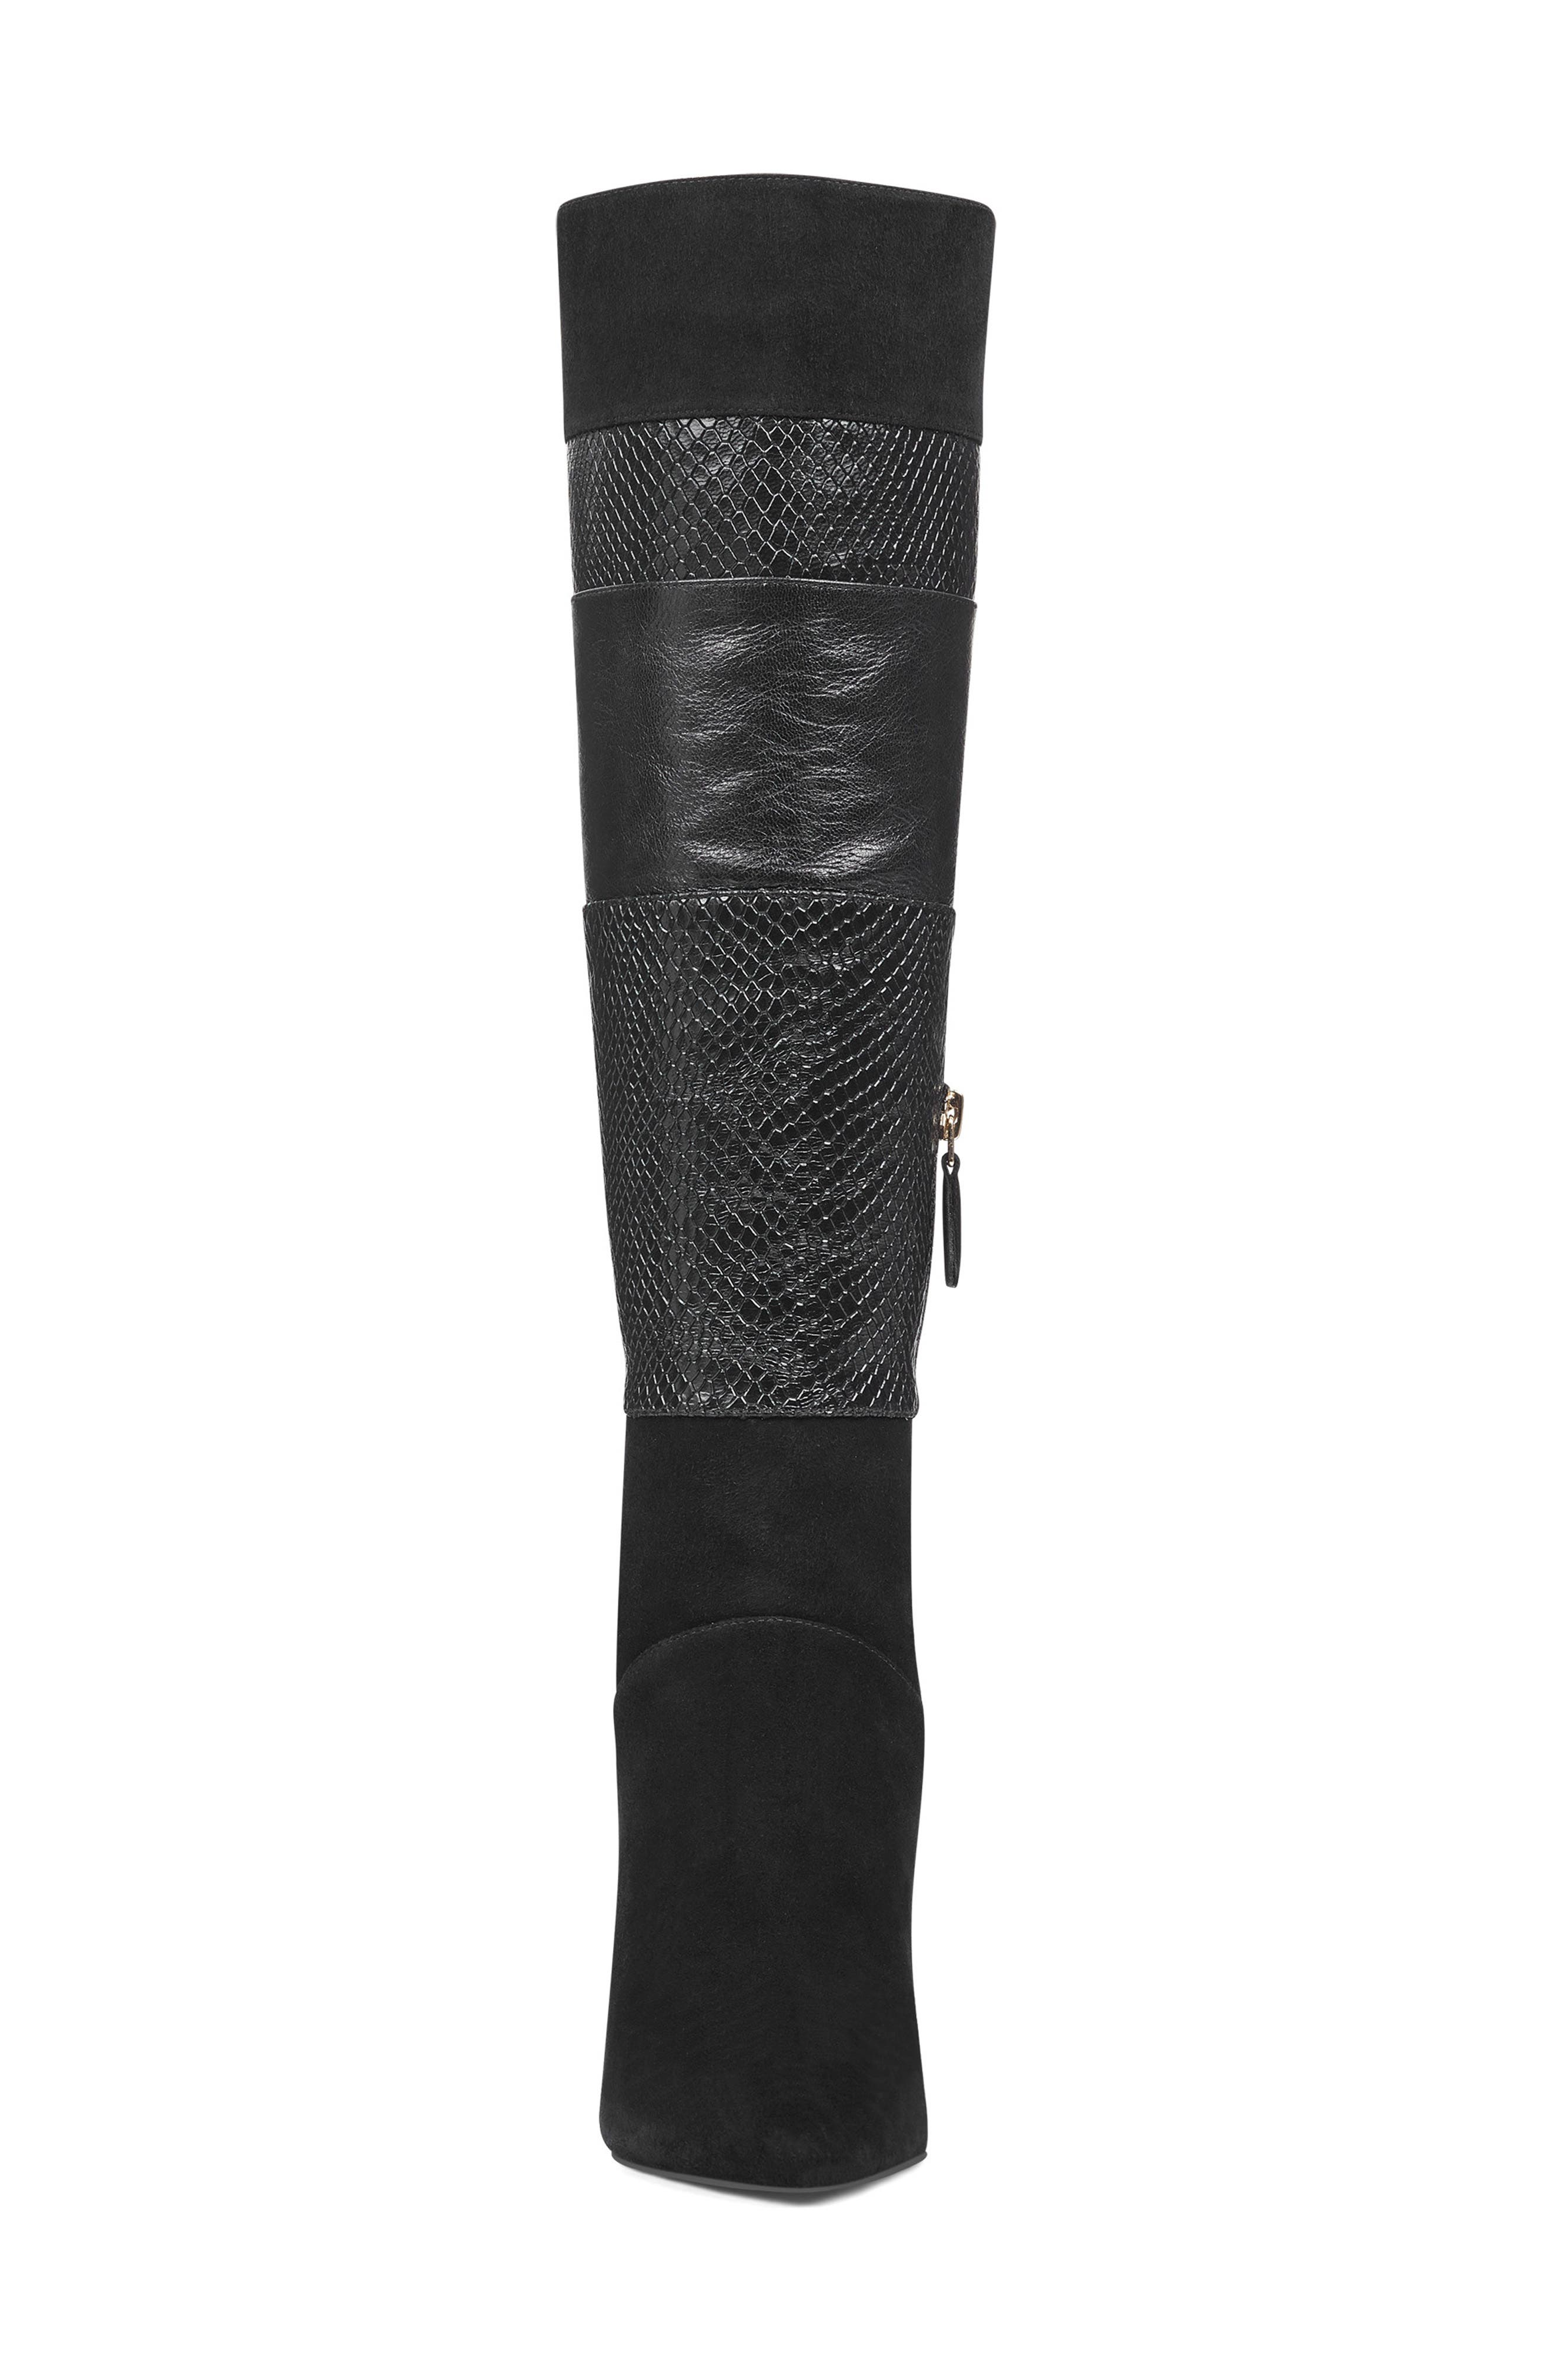 Toprank Blocked Knee High Boot,                             Alternate thumbnail 4, color,                             BLACK SUEDE